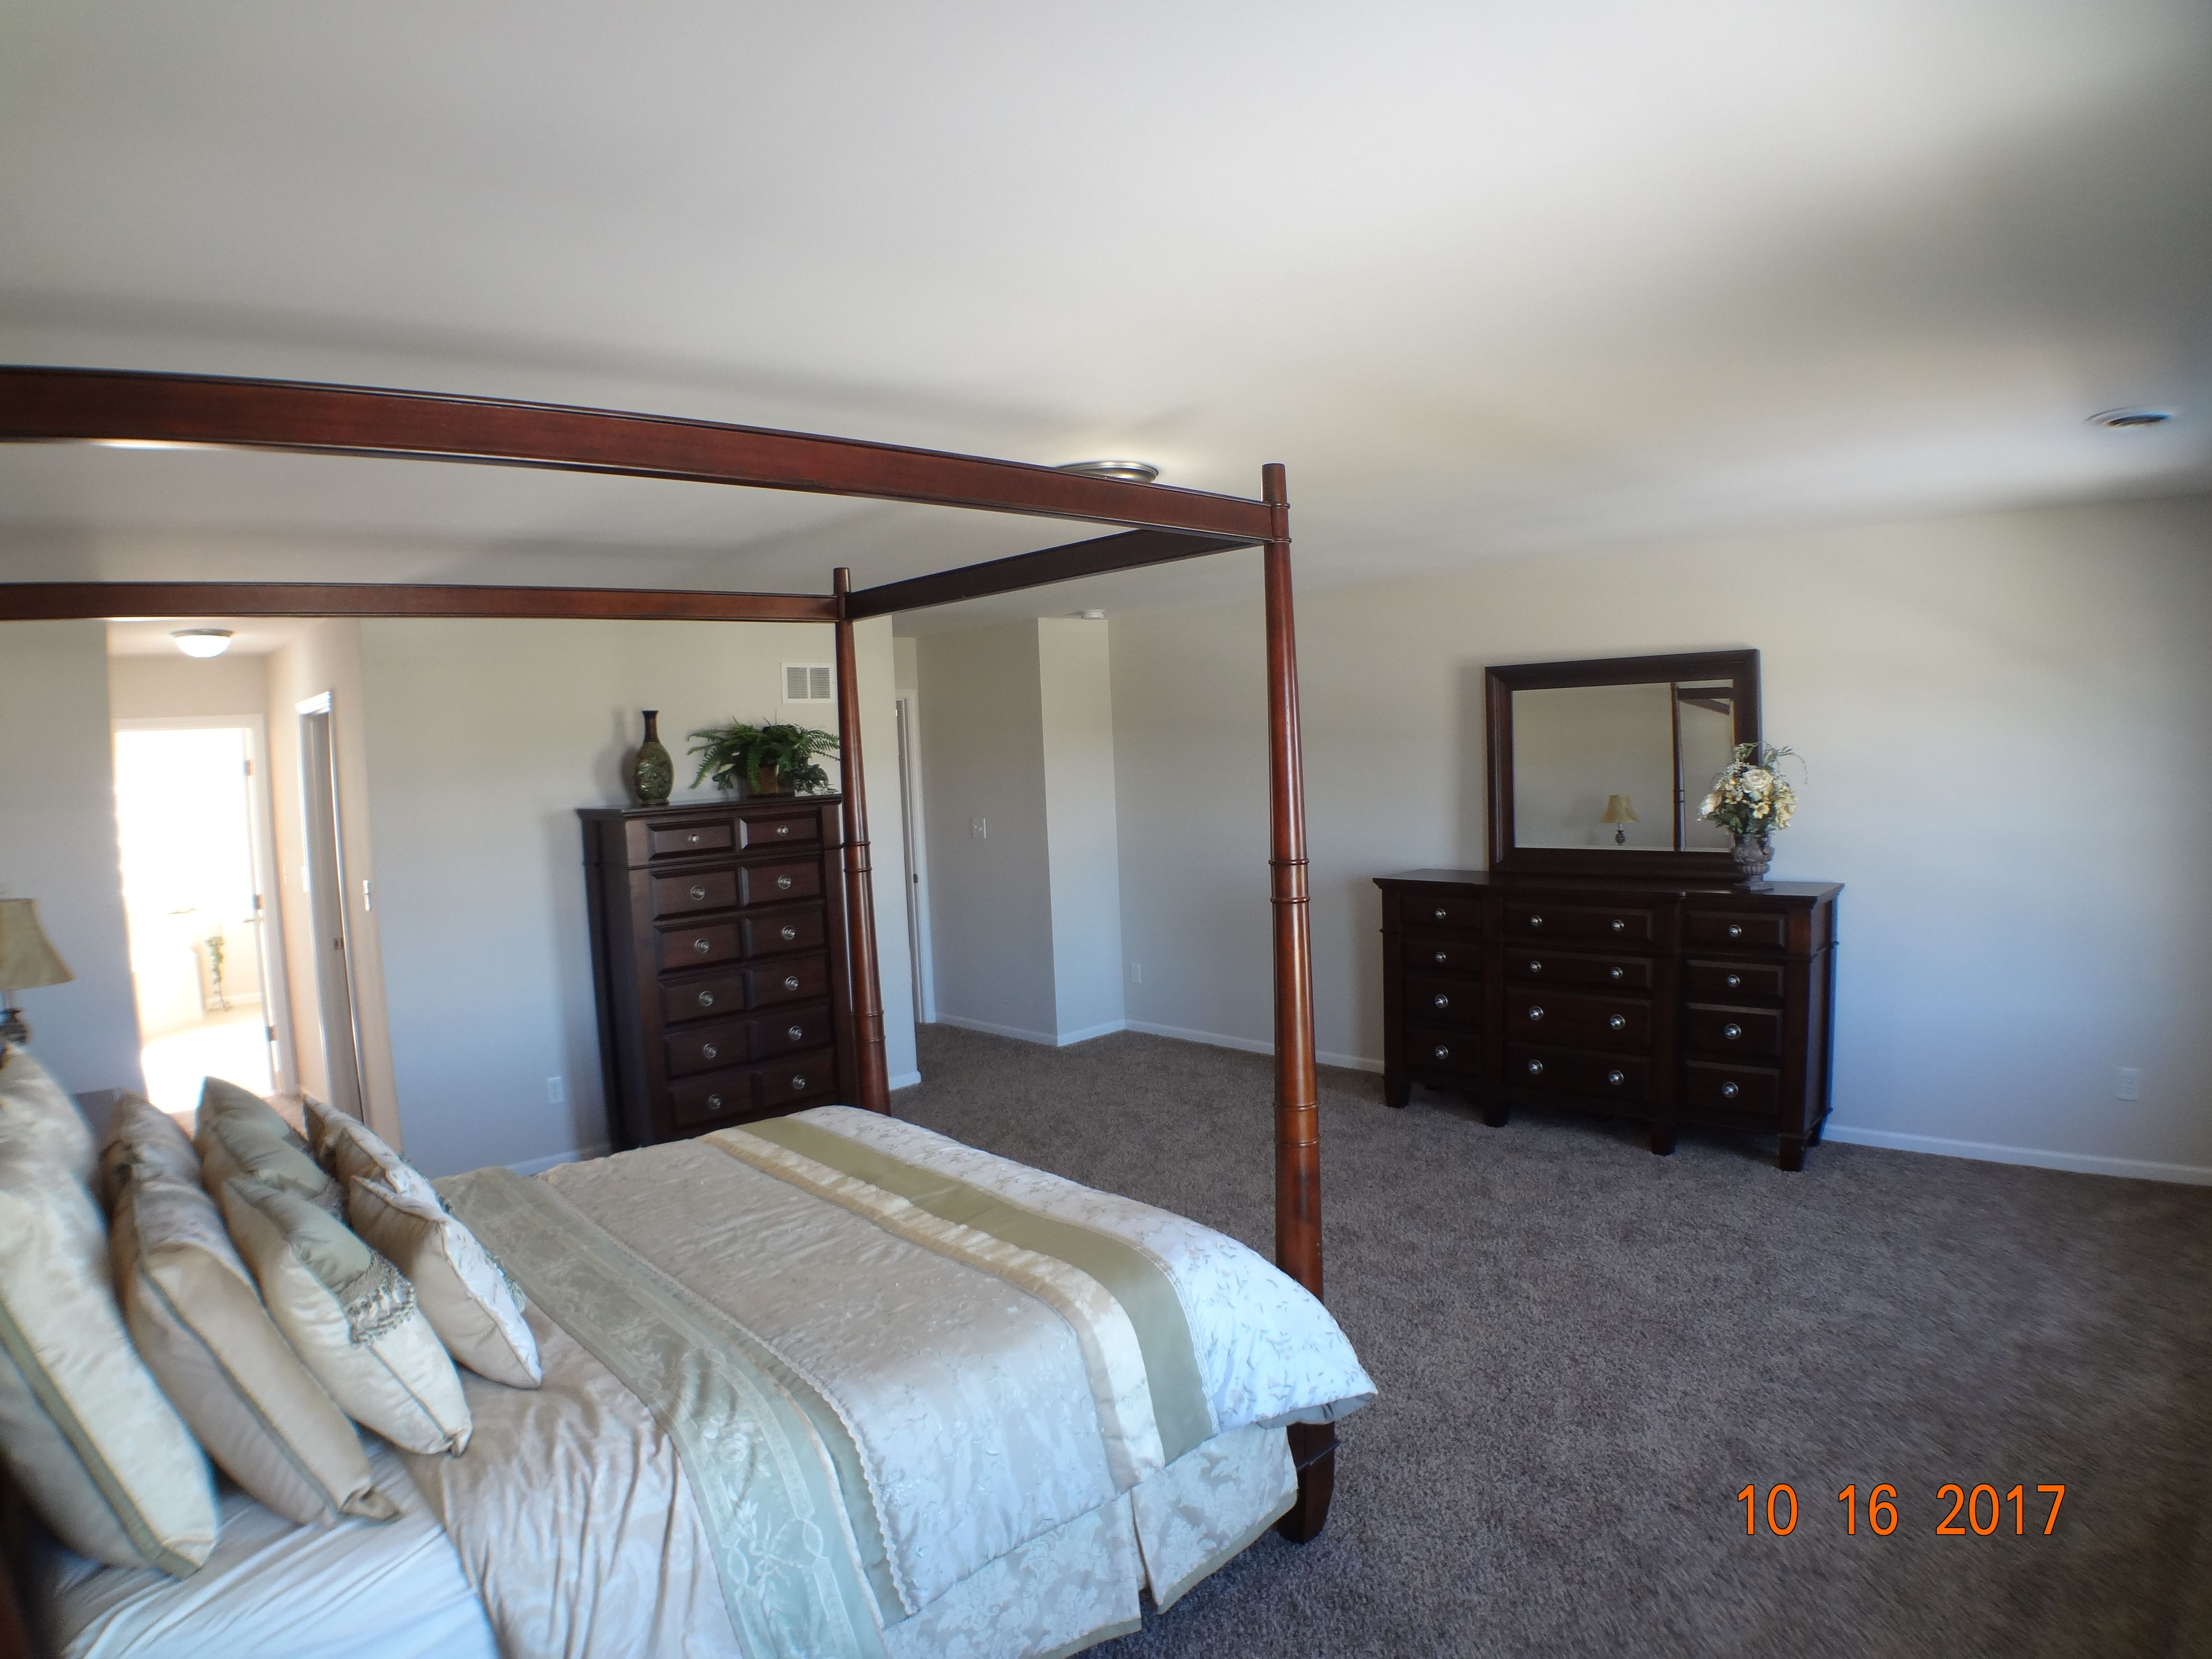 Bedroom featured in the Smithport By Accent Homes Inc. in Gary, IN